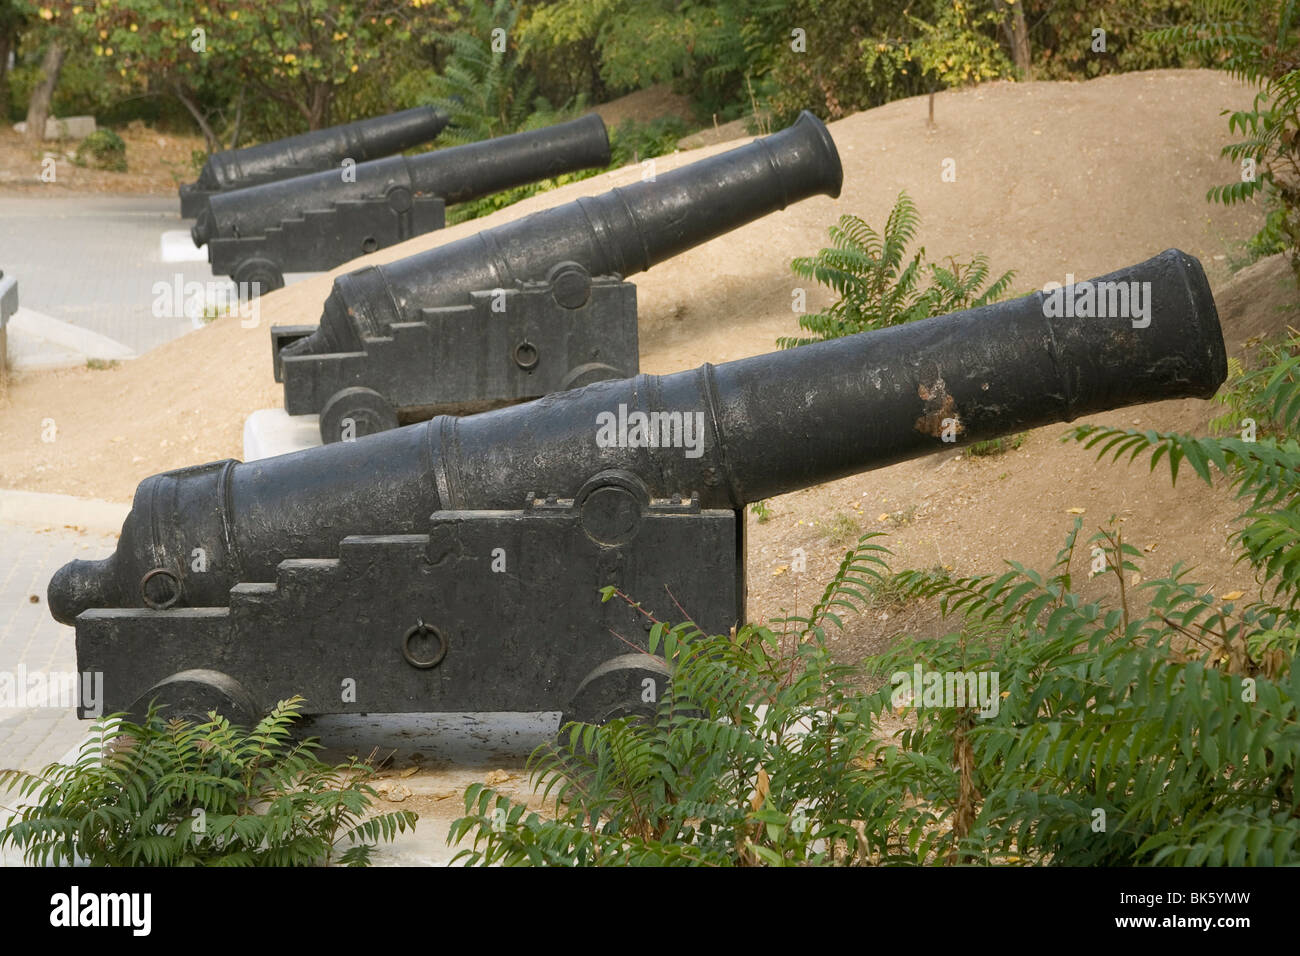 Cannons from 1854-5 battles, Malakhov bastion, Sevastopol, Crimea, Ukraine, Europe - Stock Image